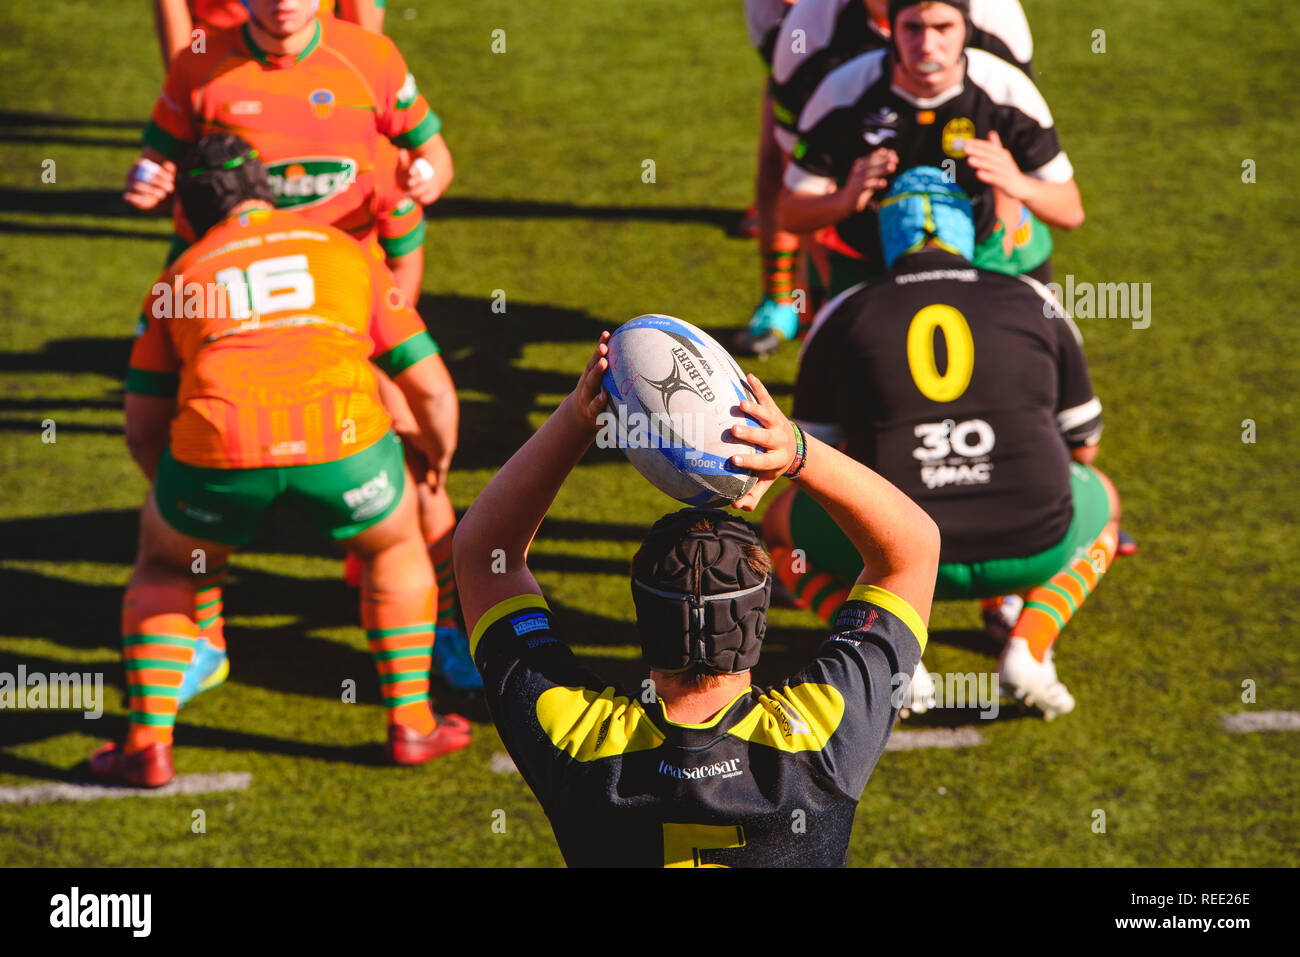 Valencia, Spain - January 19, 2019: Fight for the ball between players during an amateur rugby match. - Stock Image